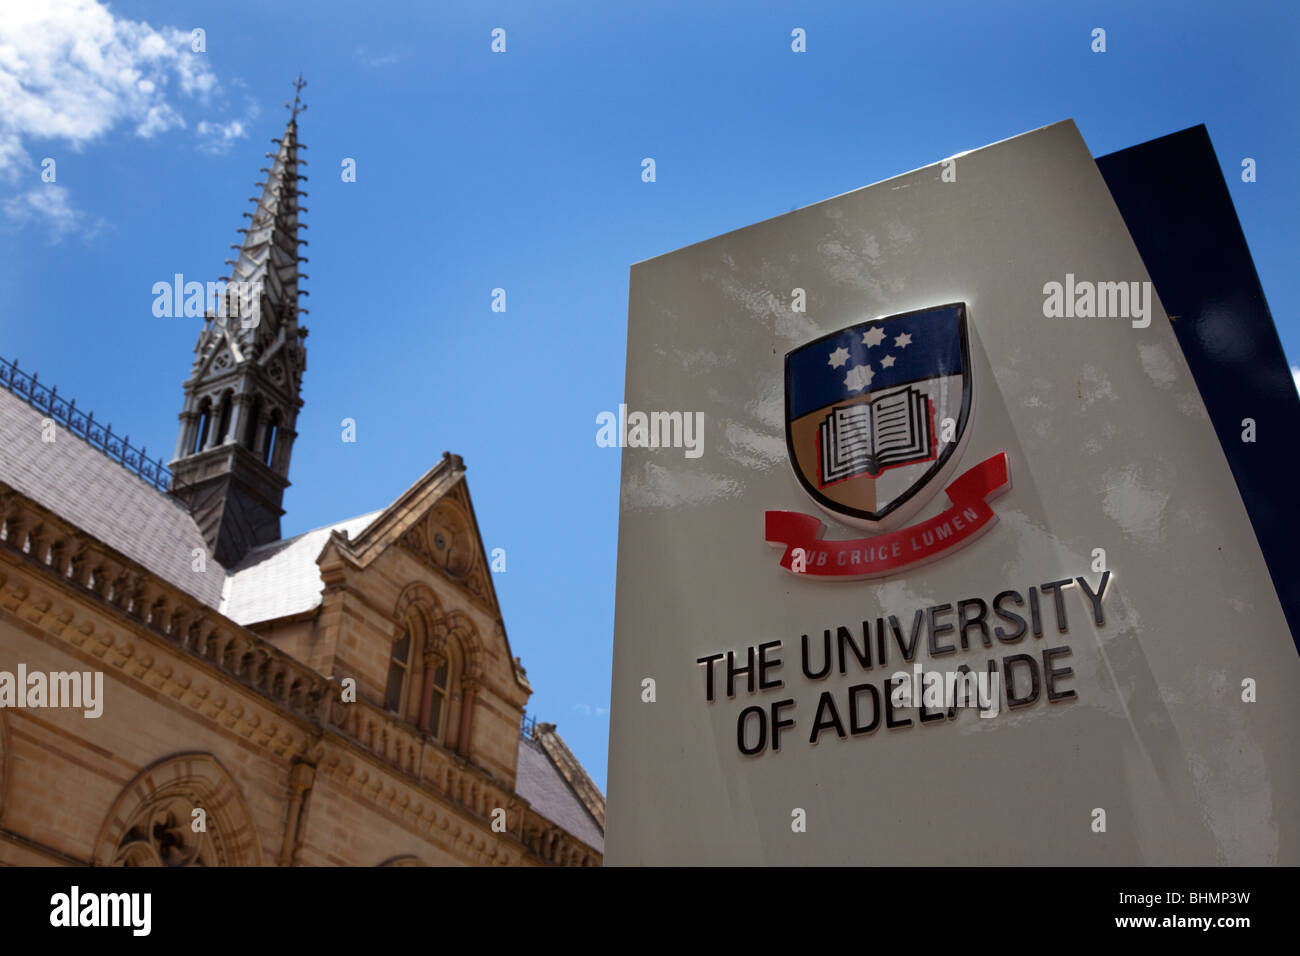 The University of Adelaide is a venerated institute from where many of Australia's finest have emerged. Stock Photo